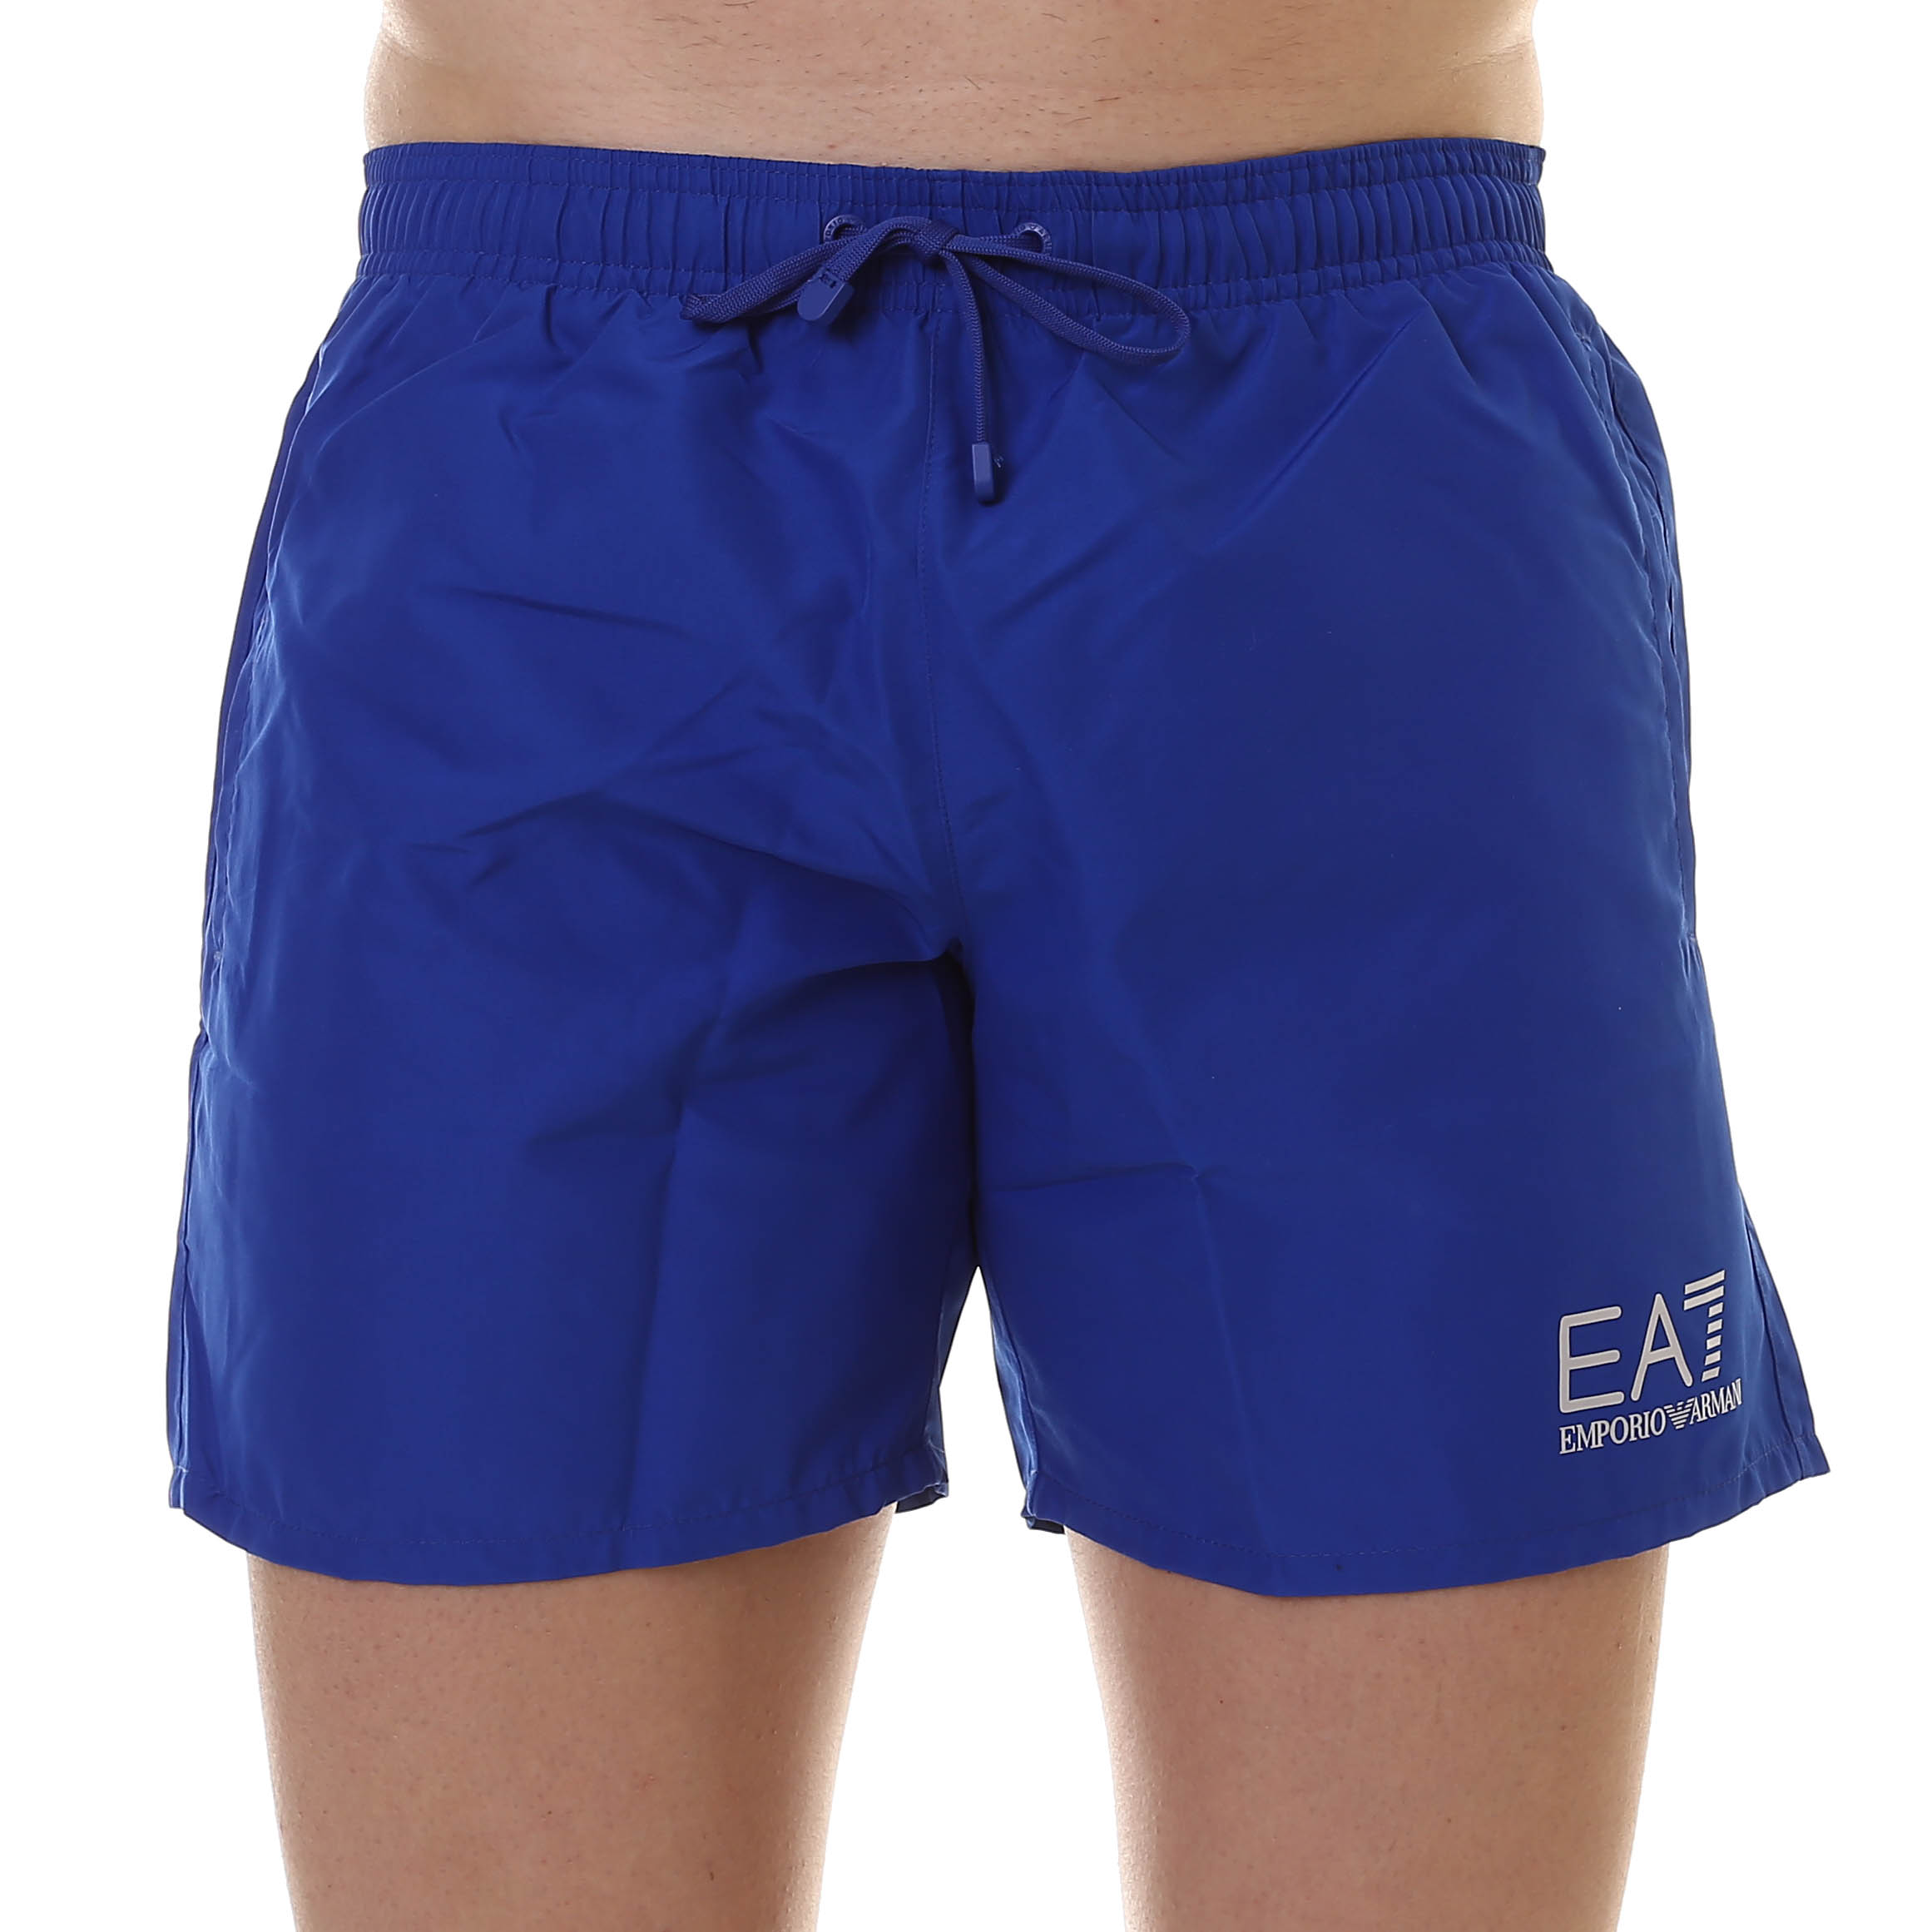 9630930ea5 Ea7 Sea World Bw Core M Boxer - Costumi | Nencini Sport